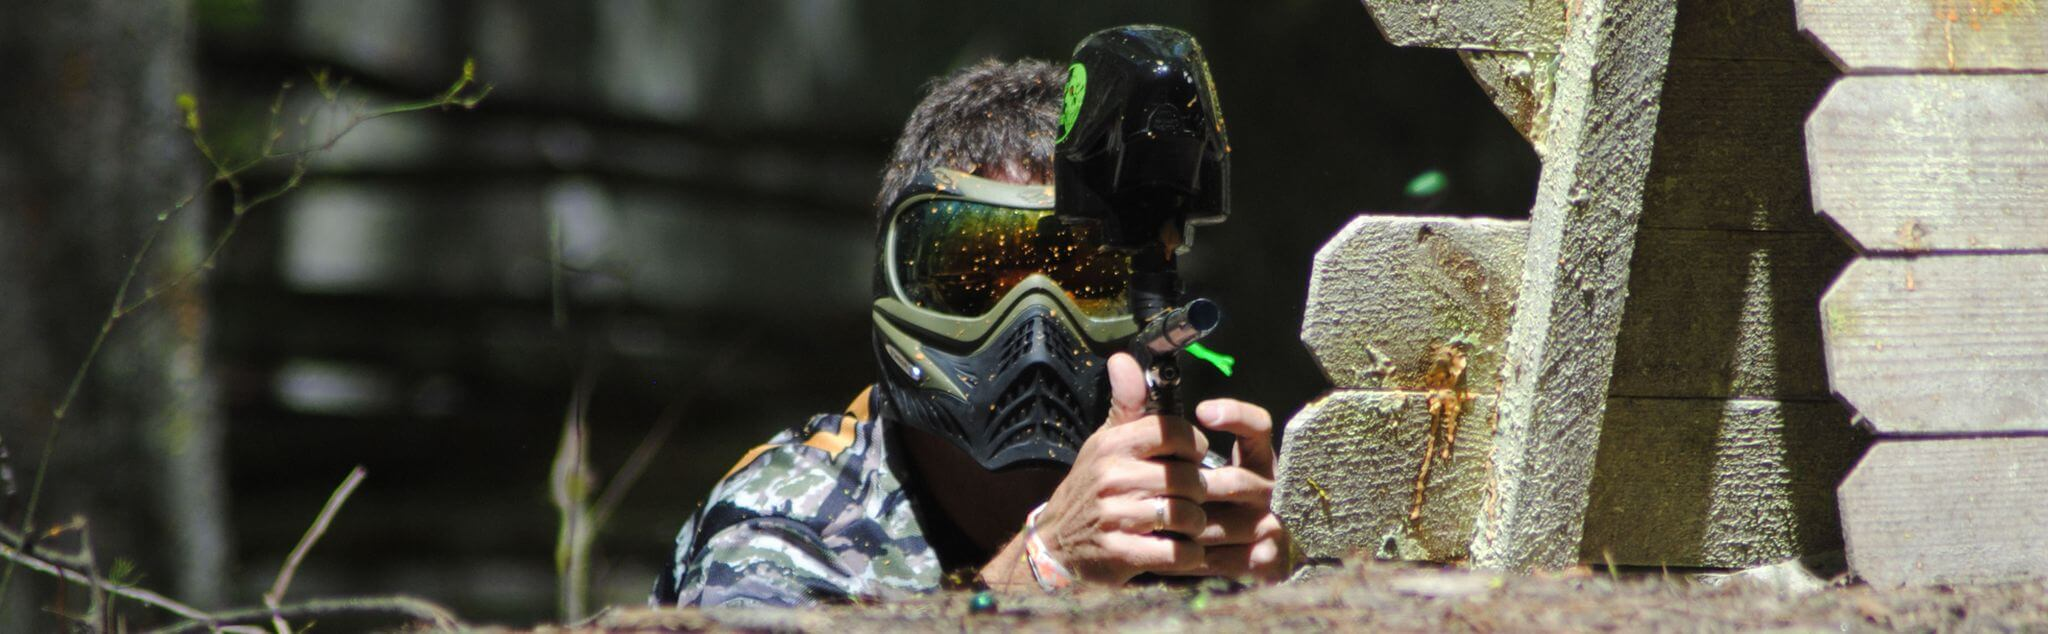 Paintball a Cuneo